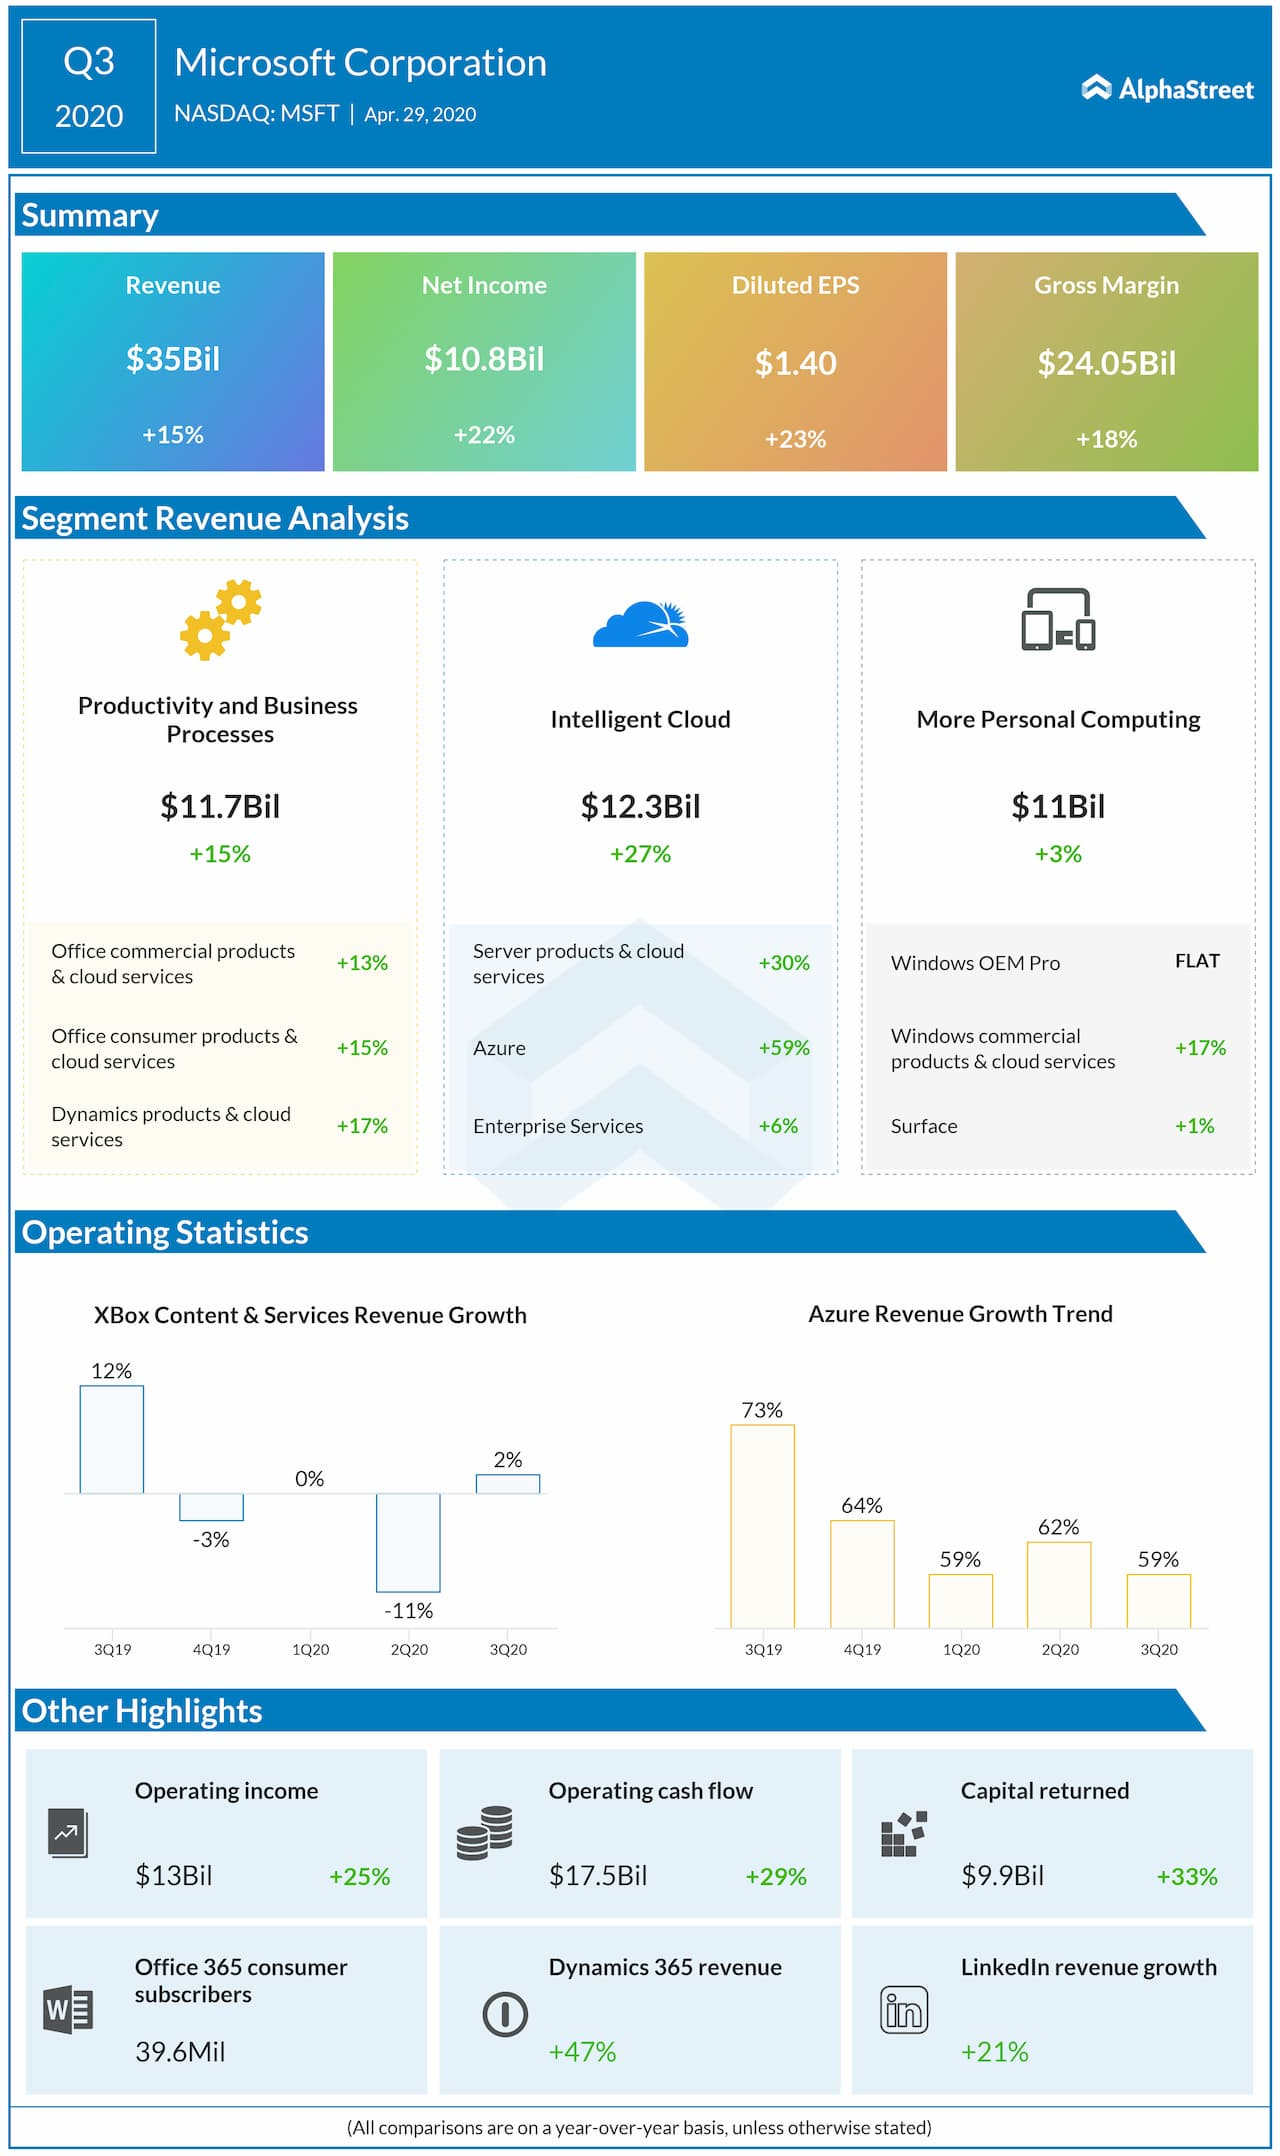 Microsoft (MSFT) Q3 2020 earnings review